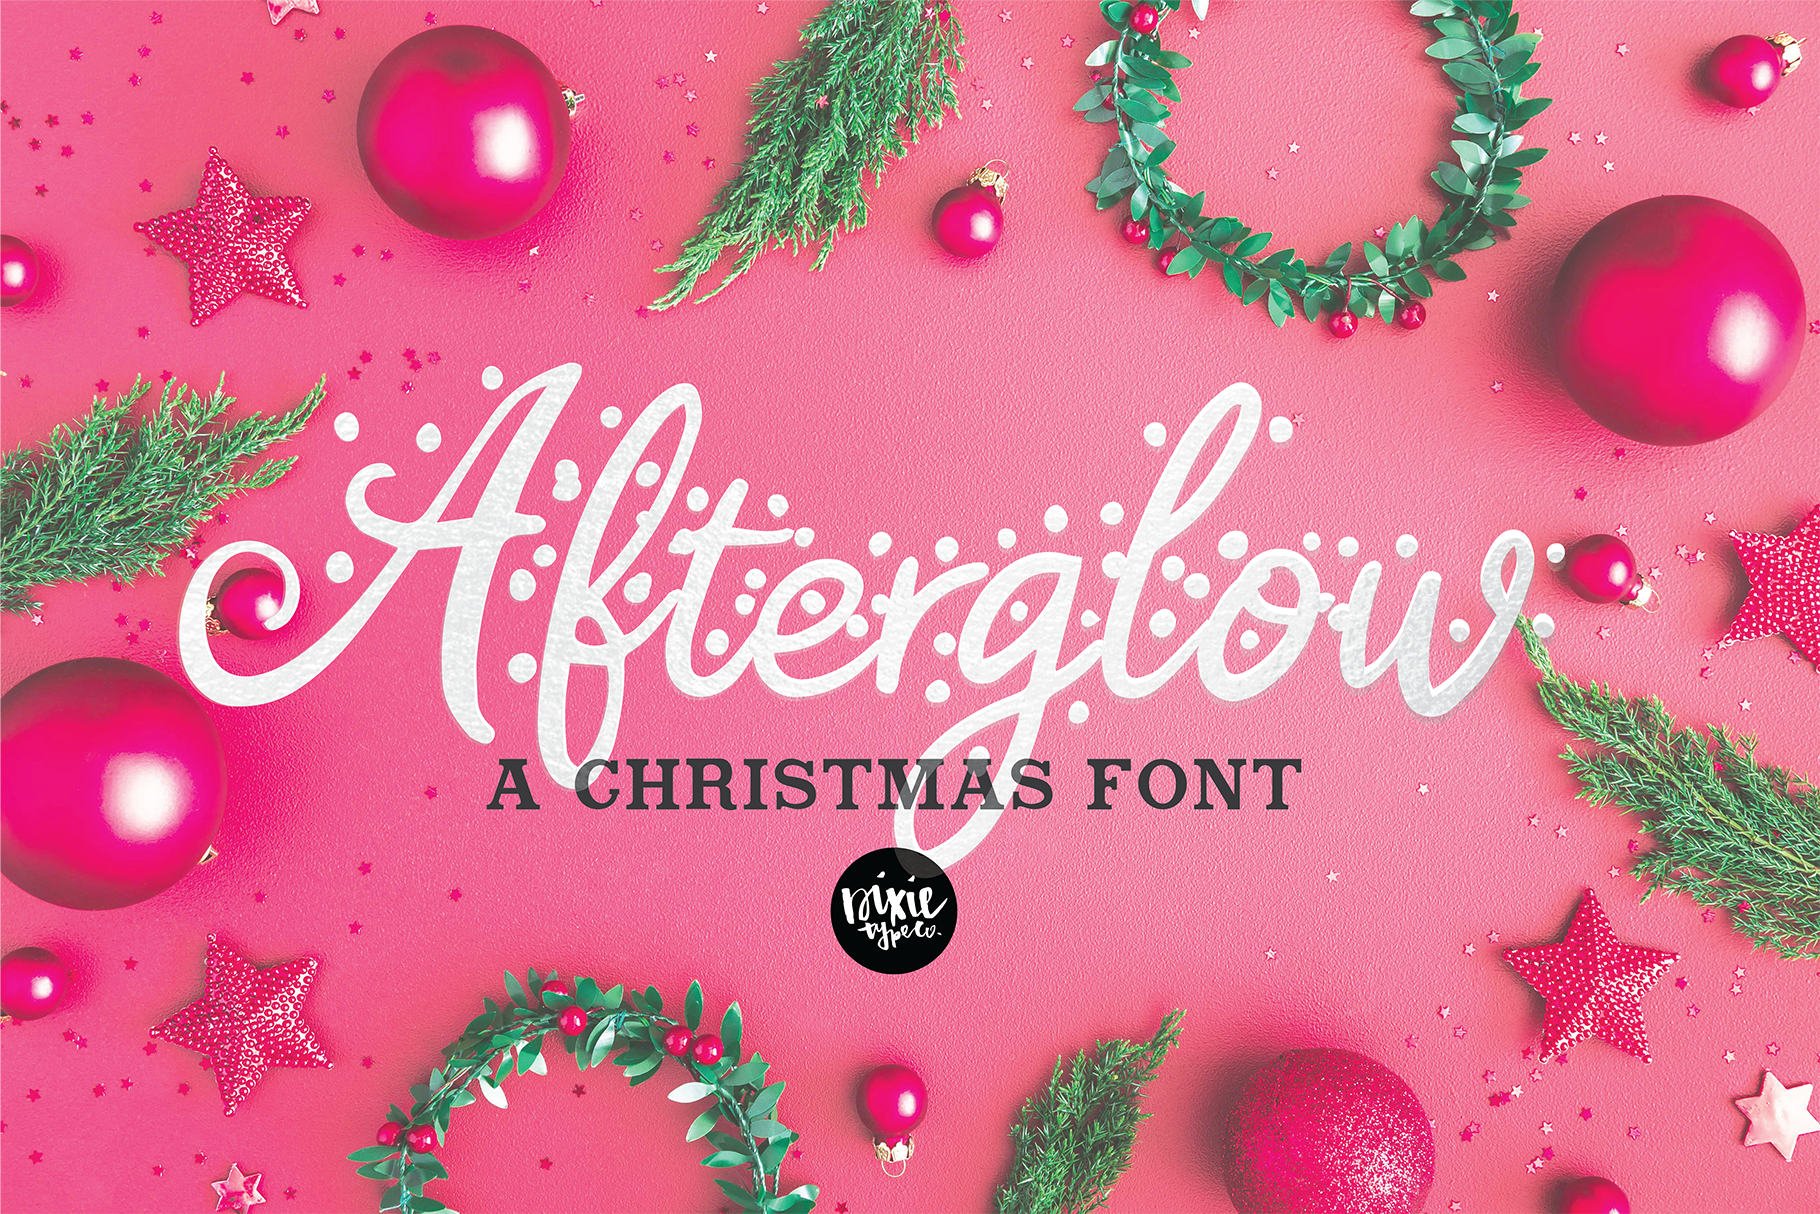 Afterglow A Christmas Snow Holiday Font By Dixie Type Co